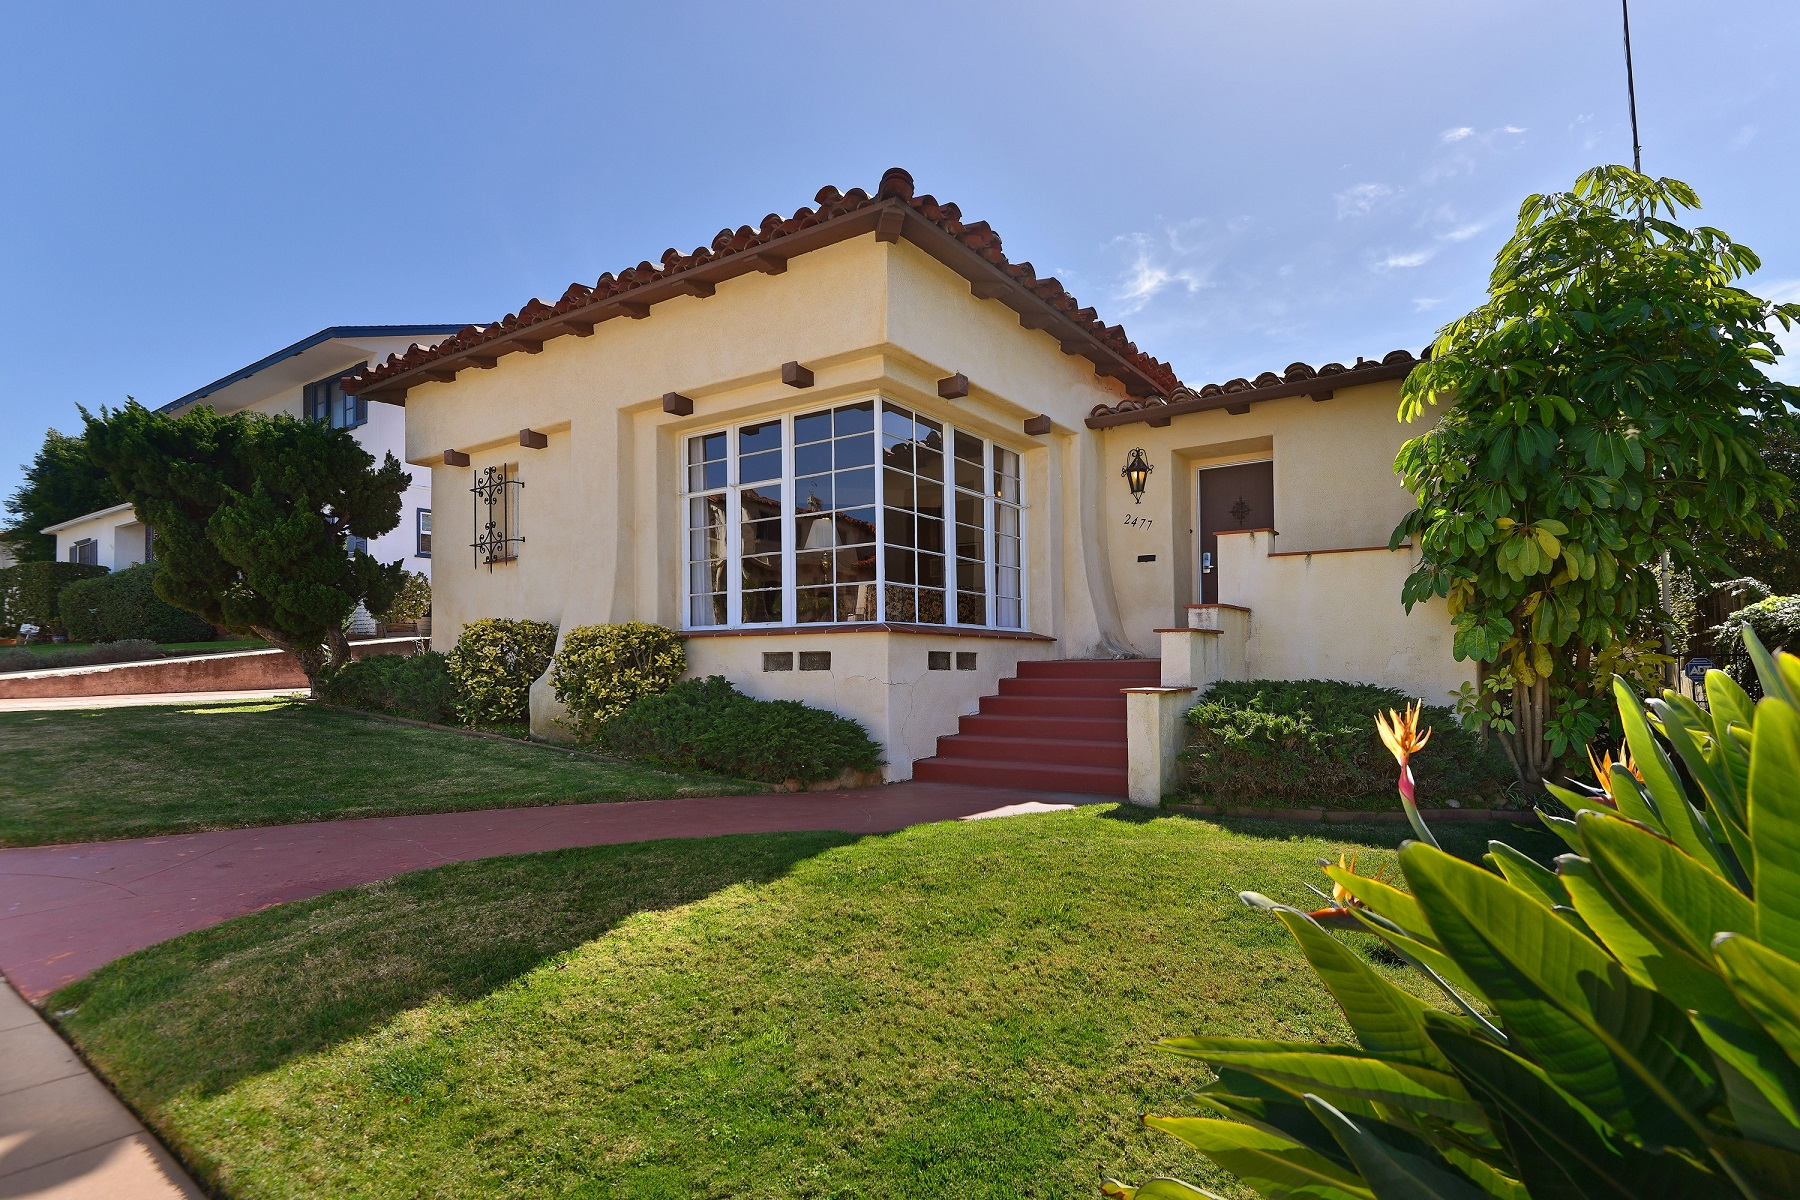 Single Family Home for Sale at 2477 Marilouise Way San Diego, California, 92103 United States